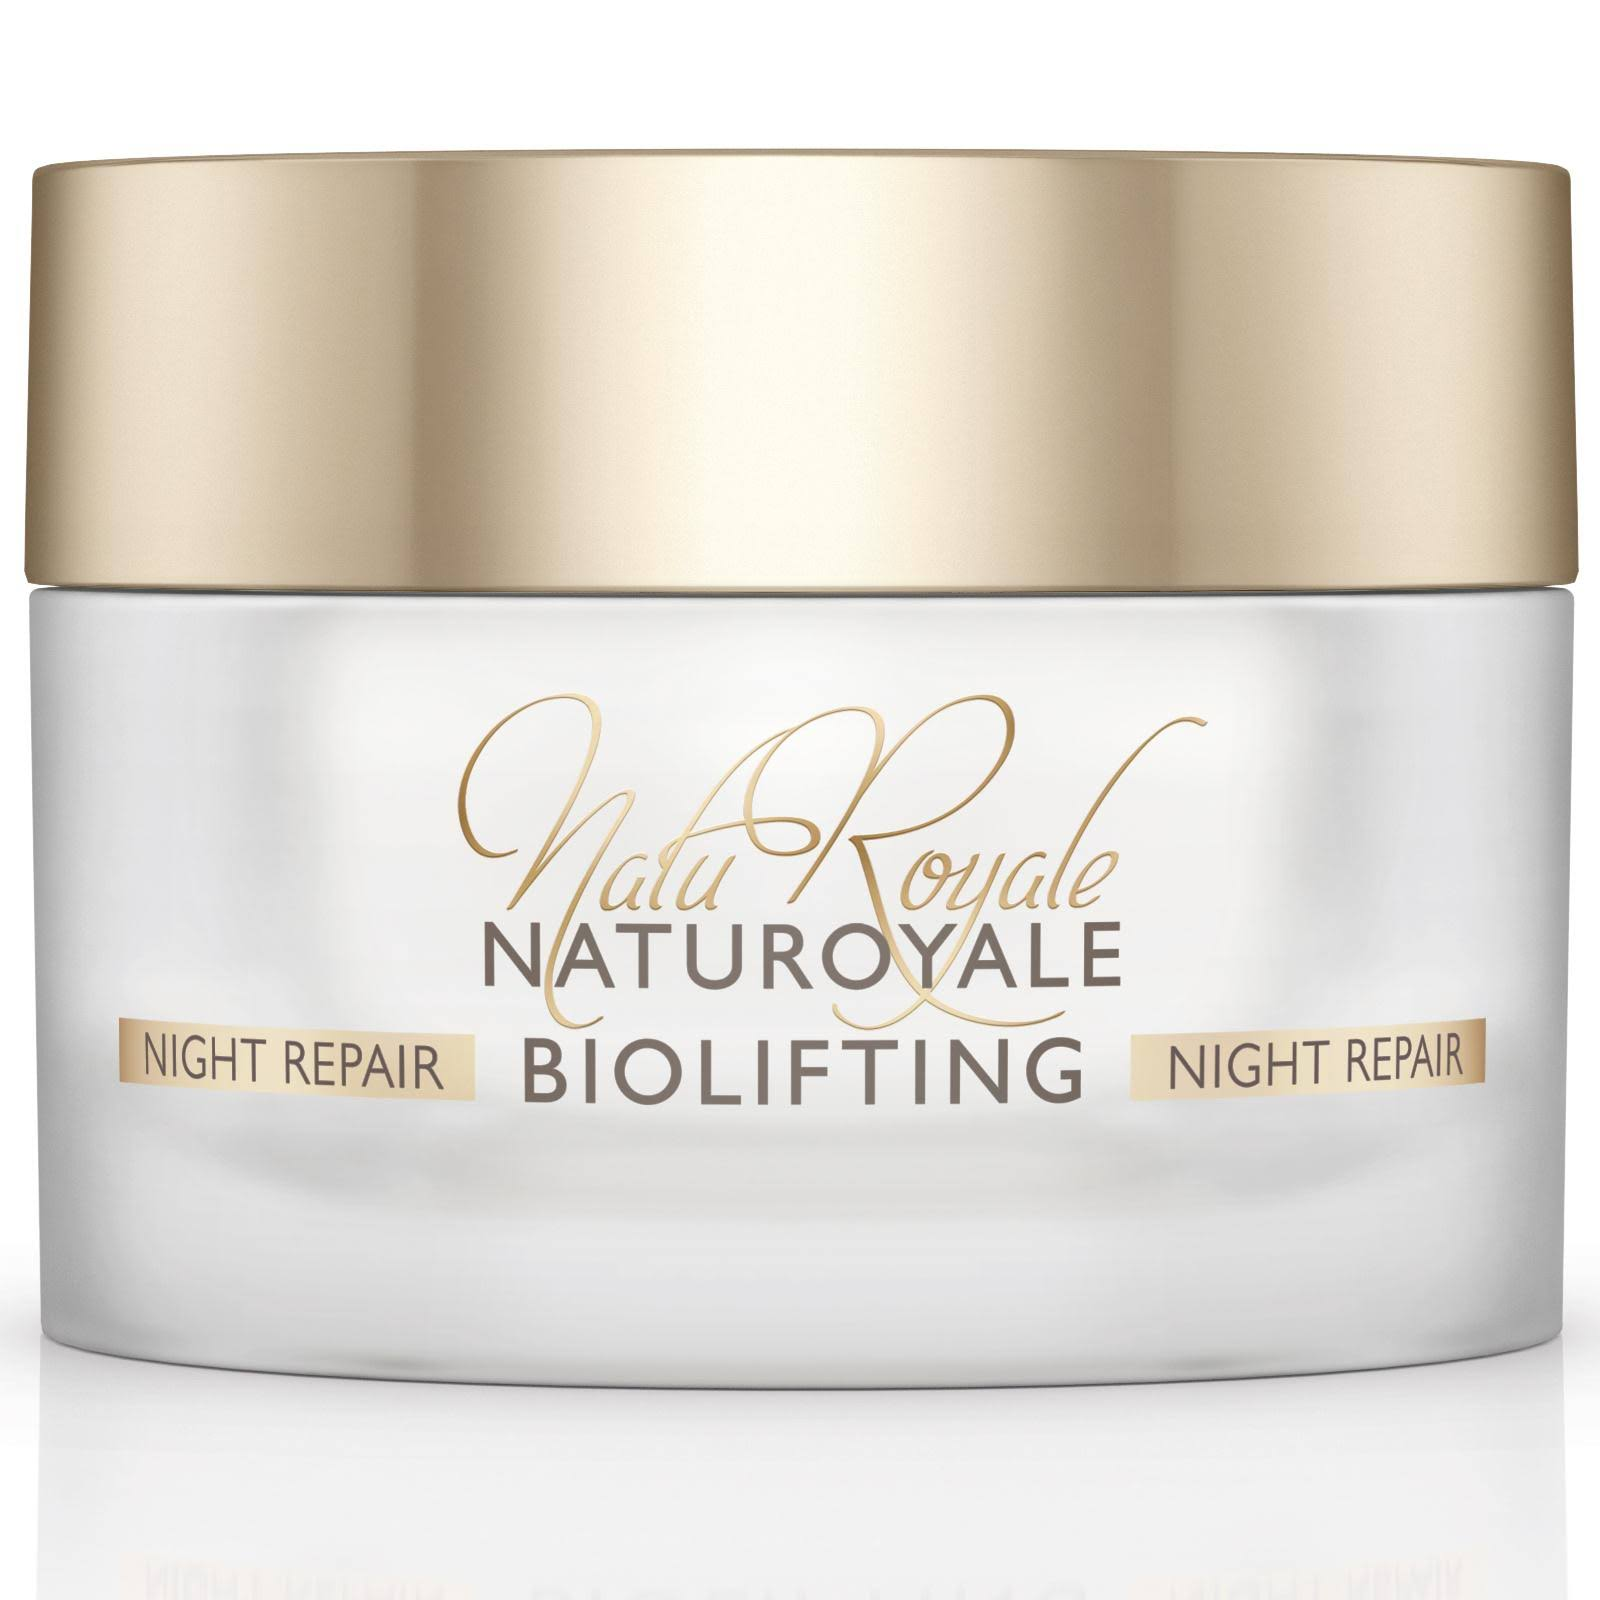 Annemarie Borlind Naturoyale Biolifting Night Repair Cream - 50ml